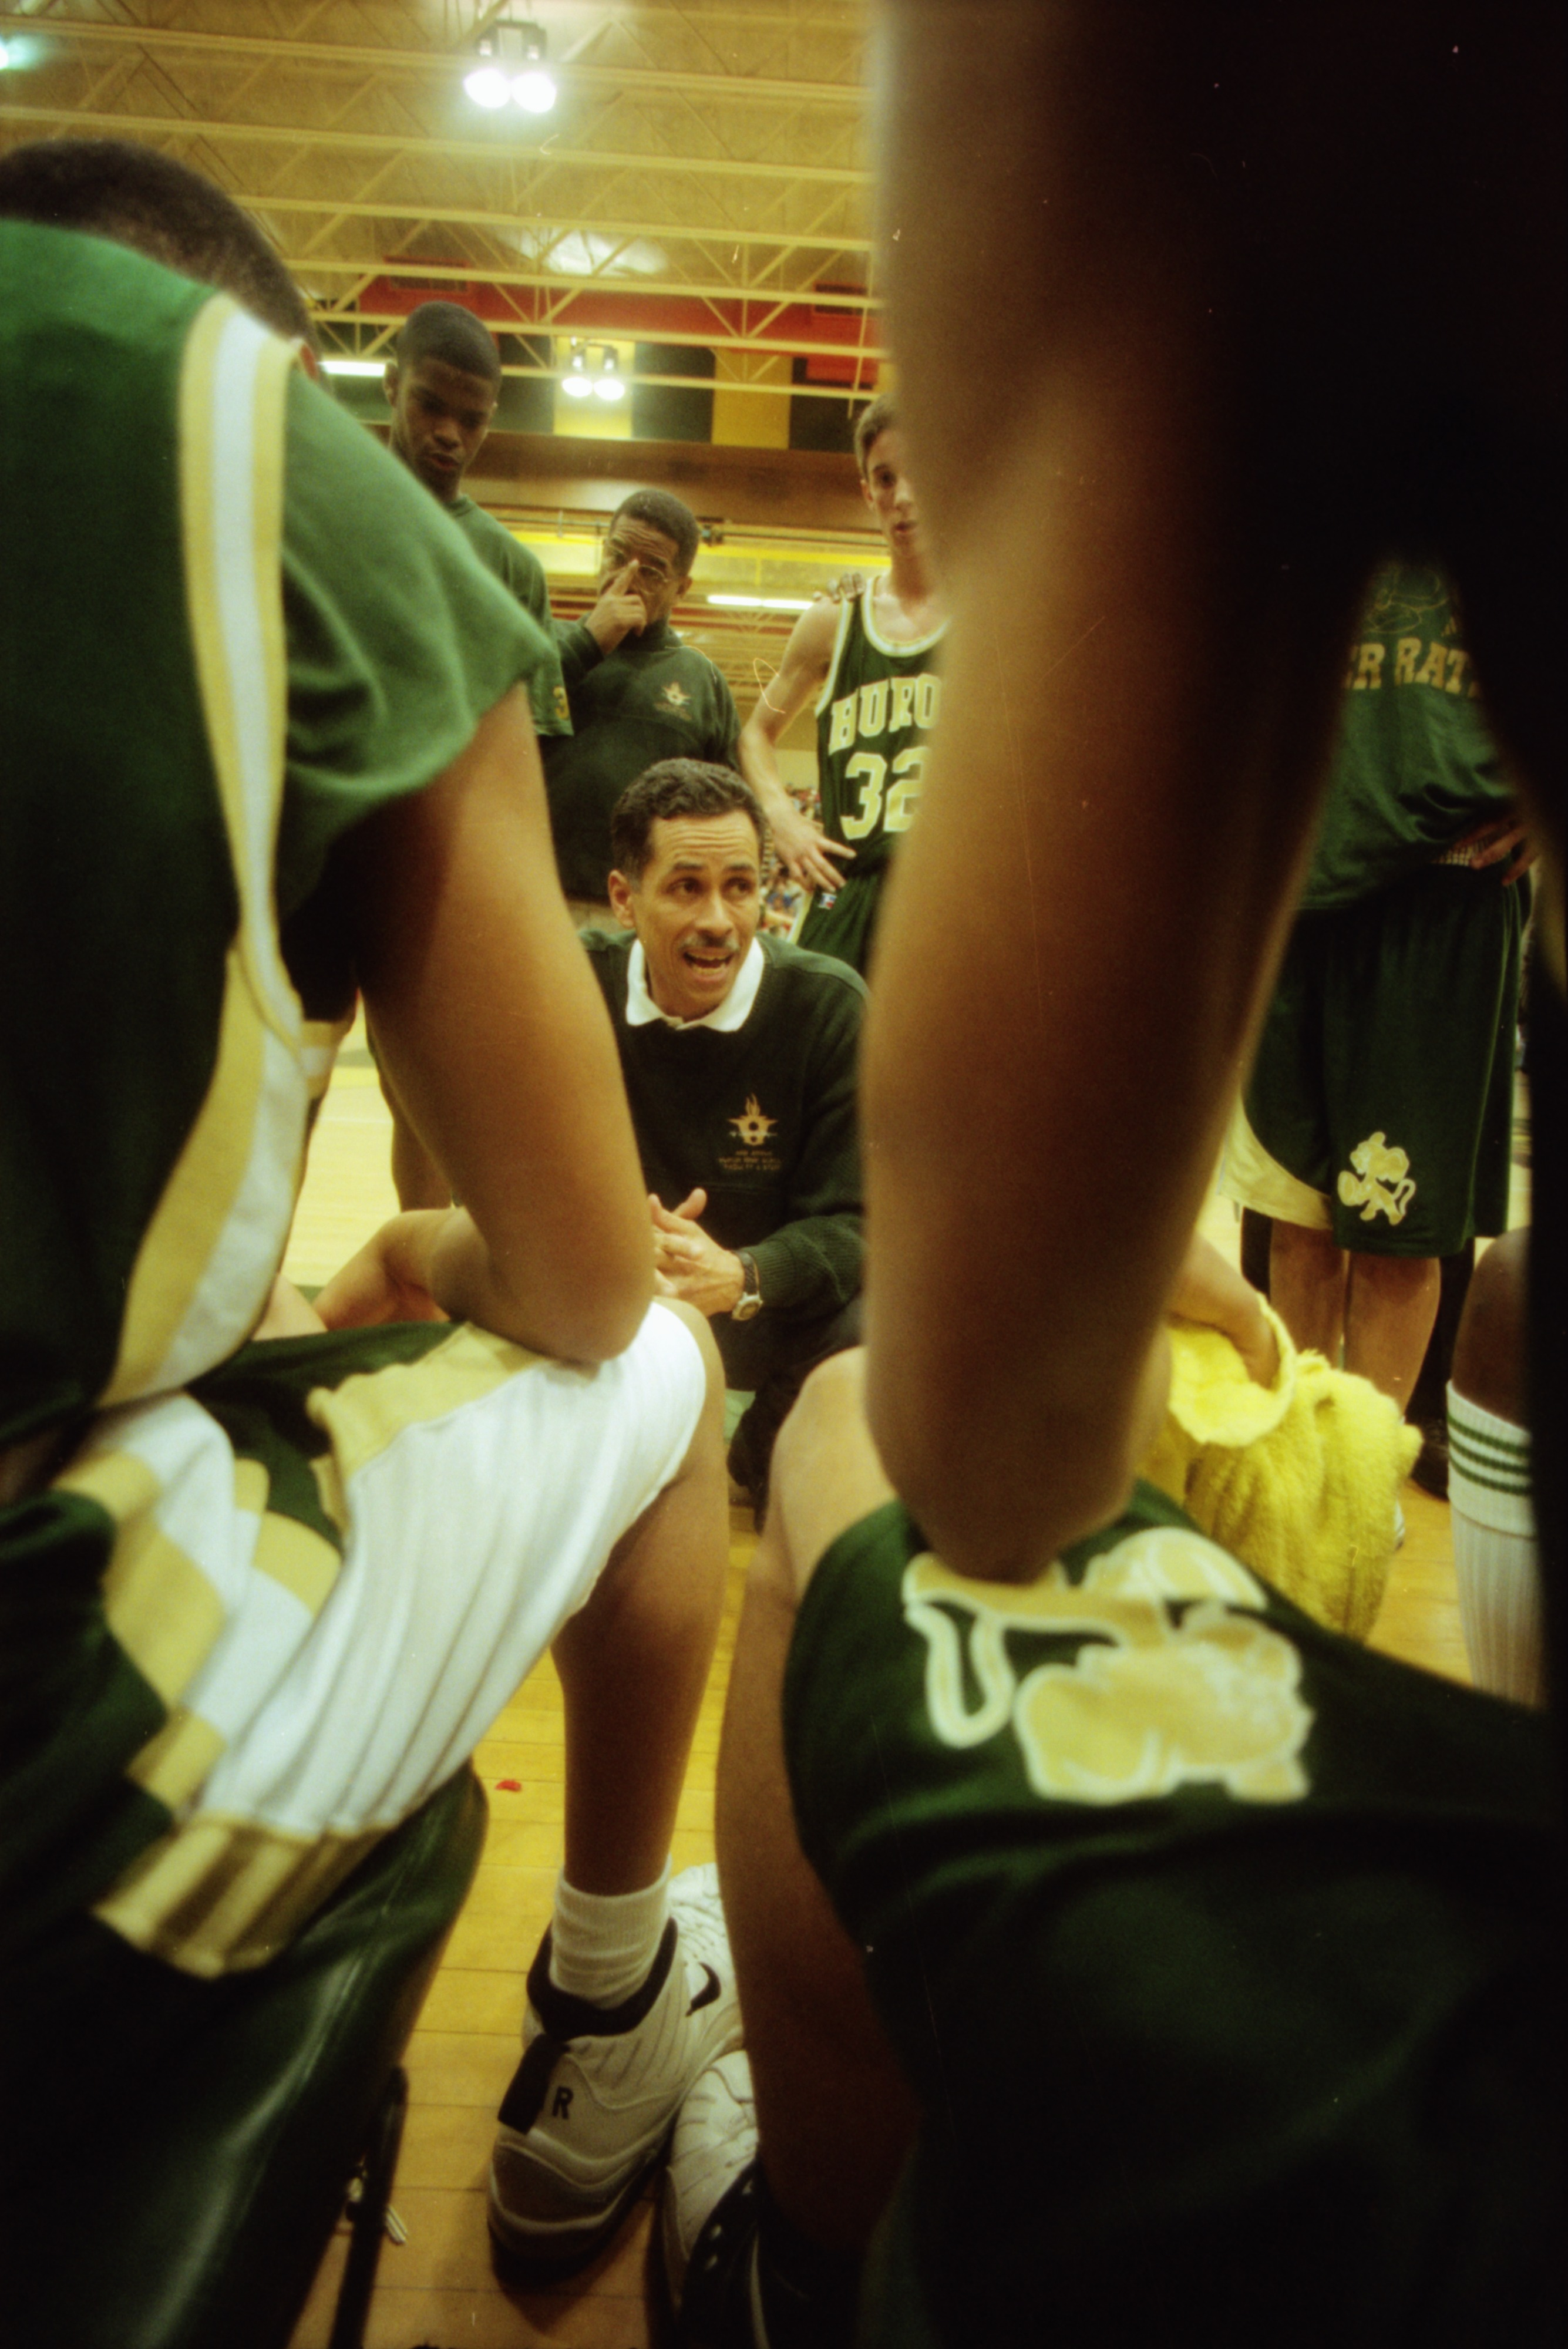 Huron Basketball Coach Harold Simons Gives a Pep Talk, March 1998 image